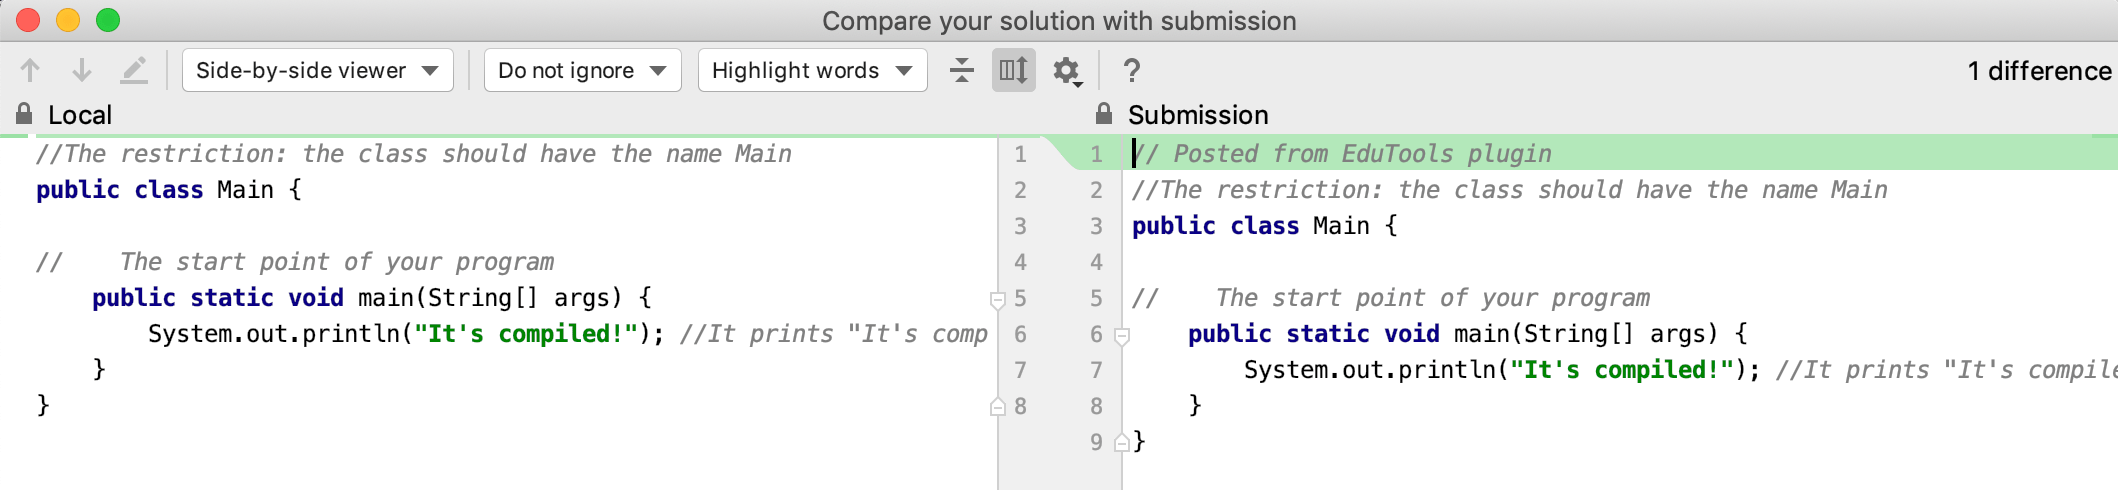 edu submissions diff java intro